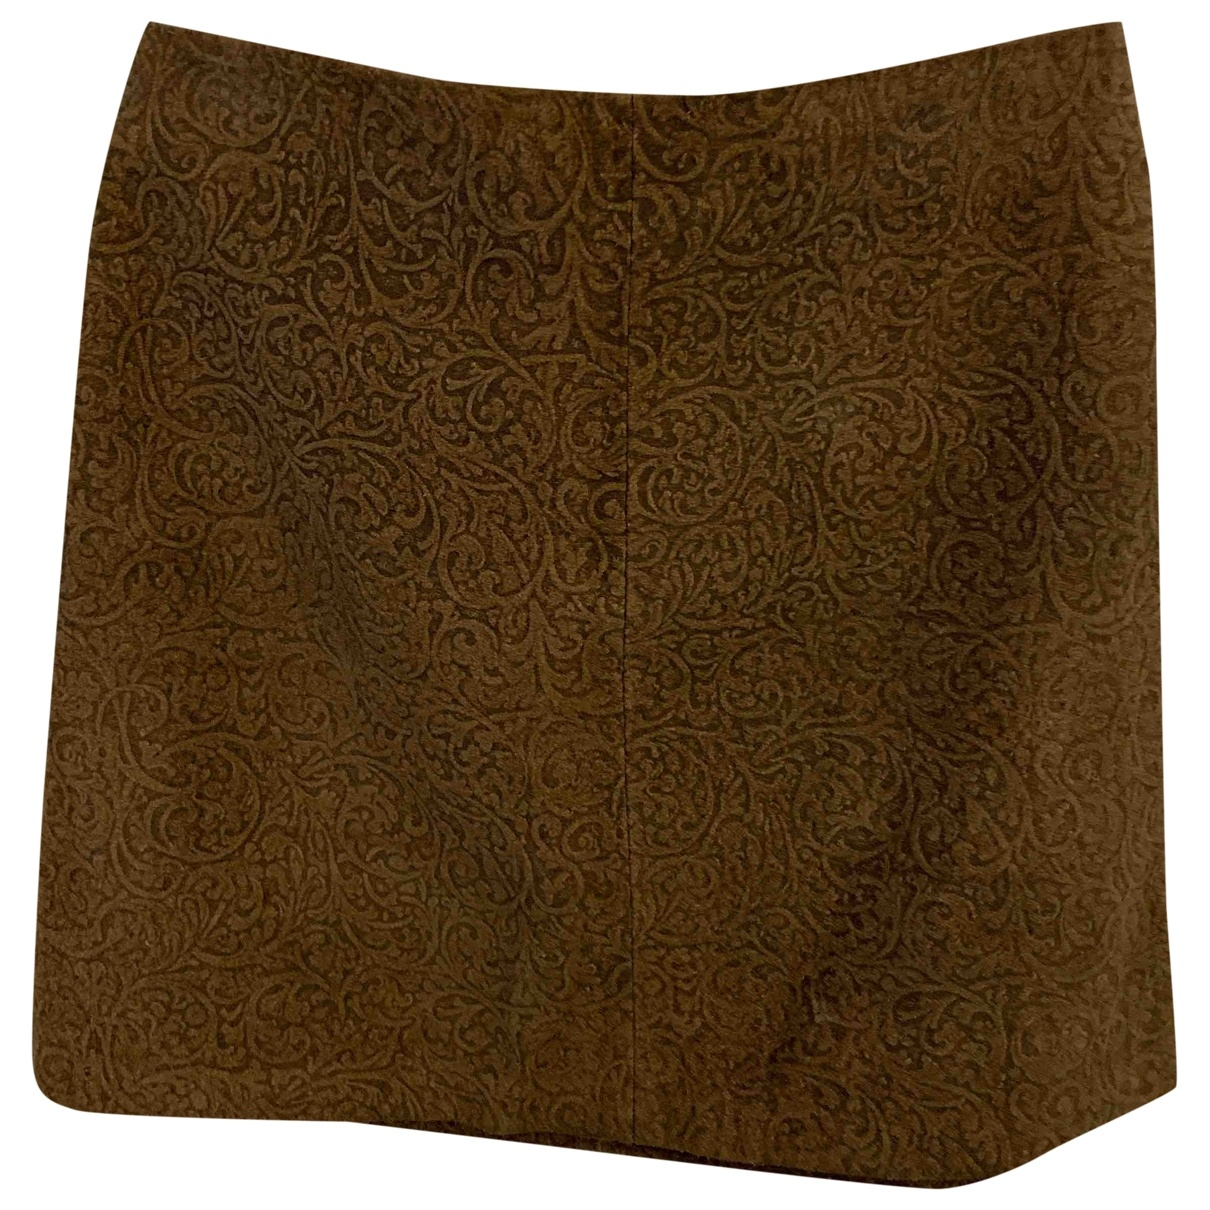 Gianfranco Ferré \N Brown Leather skirt for Women 42 IT